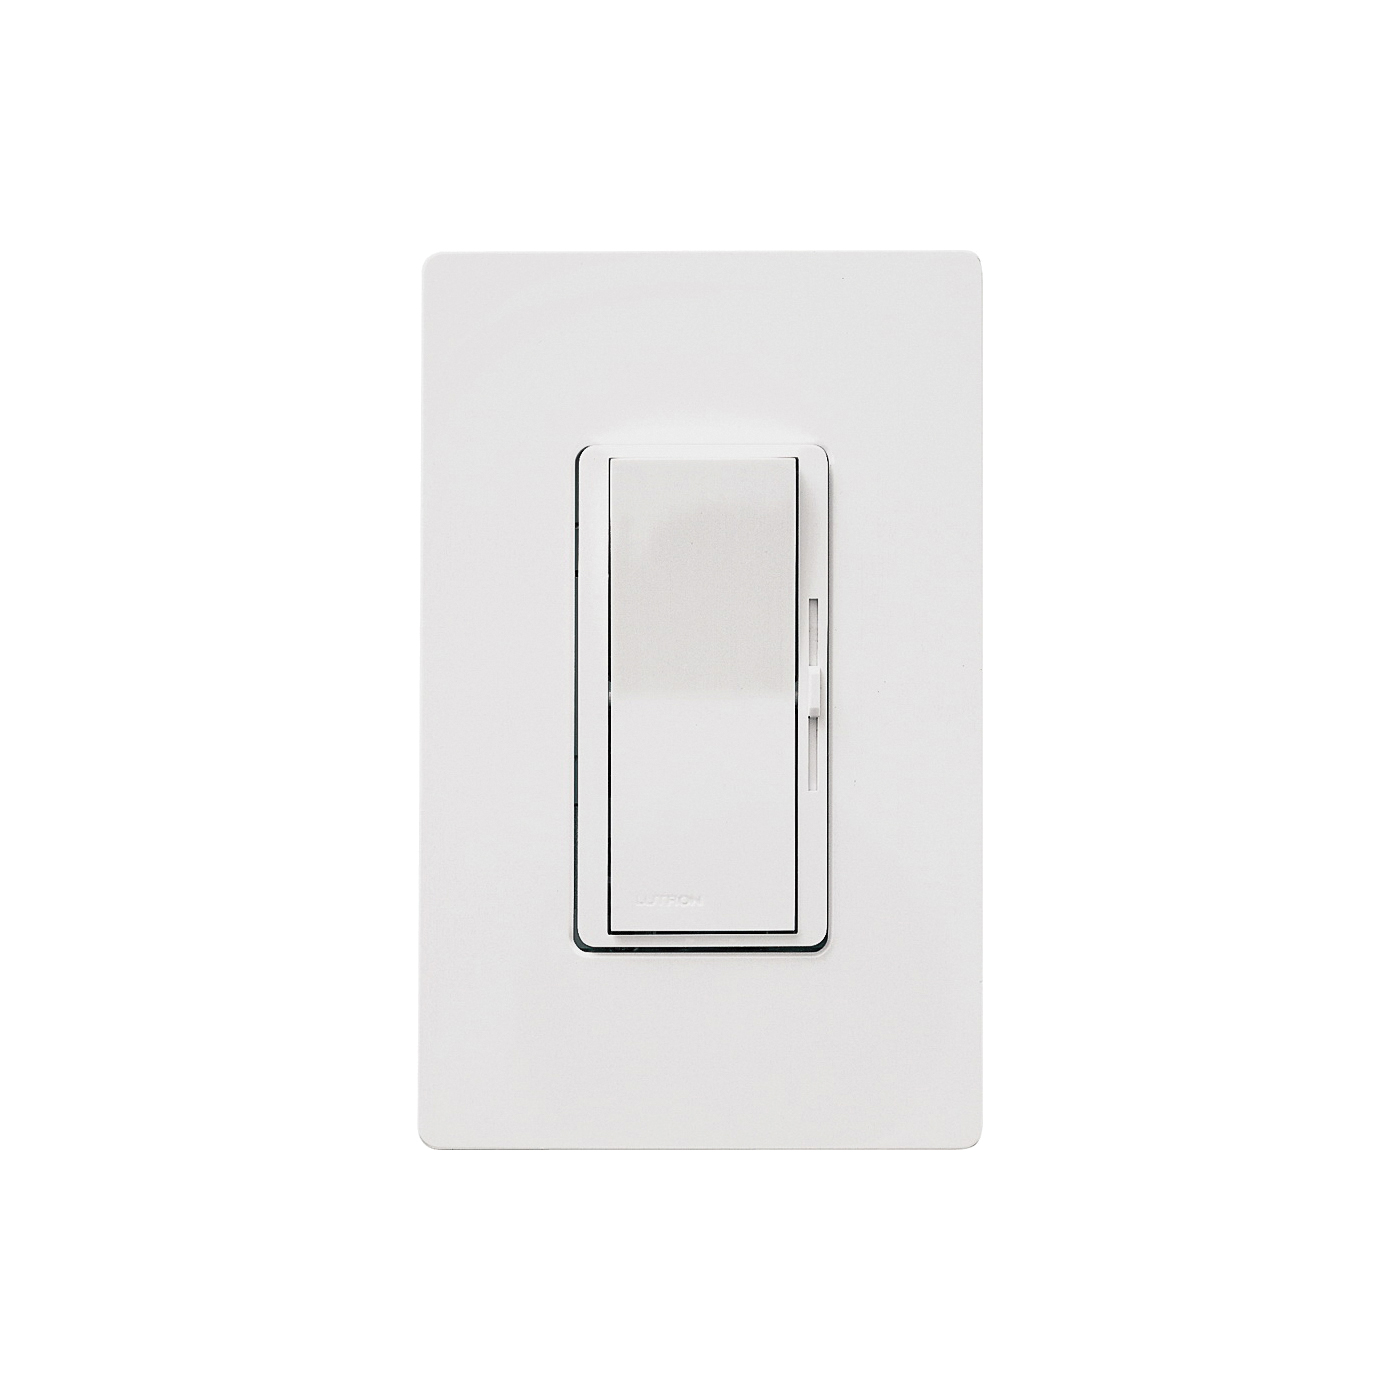 Picture of Lutron Diva DVWCL-153PH-WH C.L Dimmer with Wallplate, 1.25 A, 120 V, 150 W, CFL, Halogen, Incandescent, LED Lamp